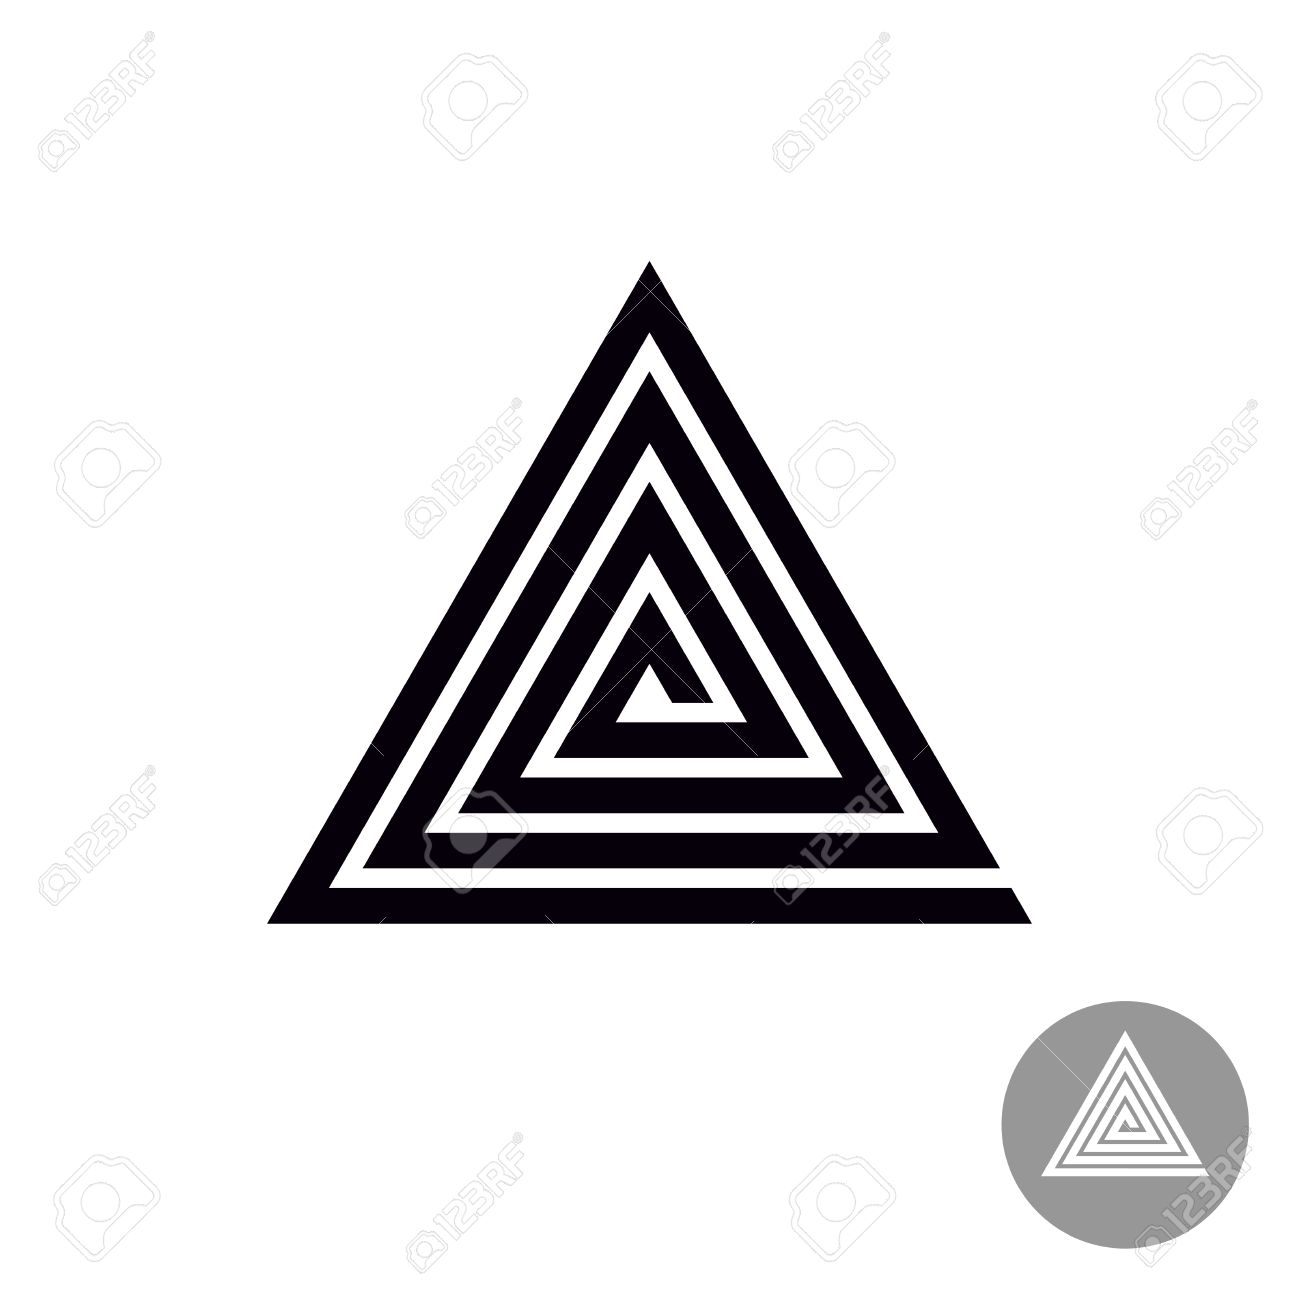 Triangle Spiral Geometric Symbol Tribal Style Abstract Royalty Free